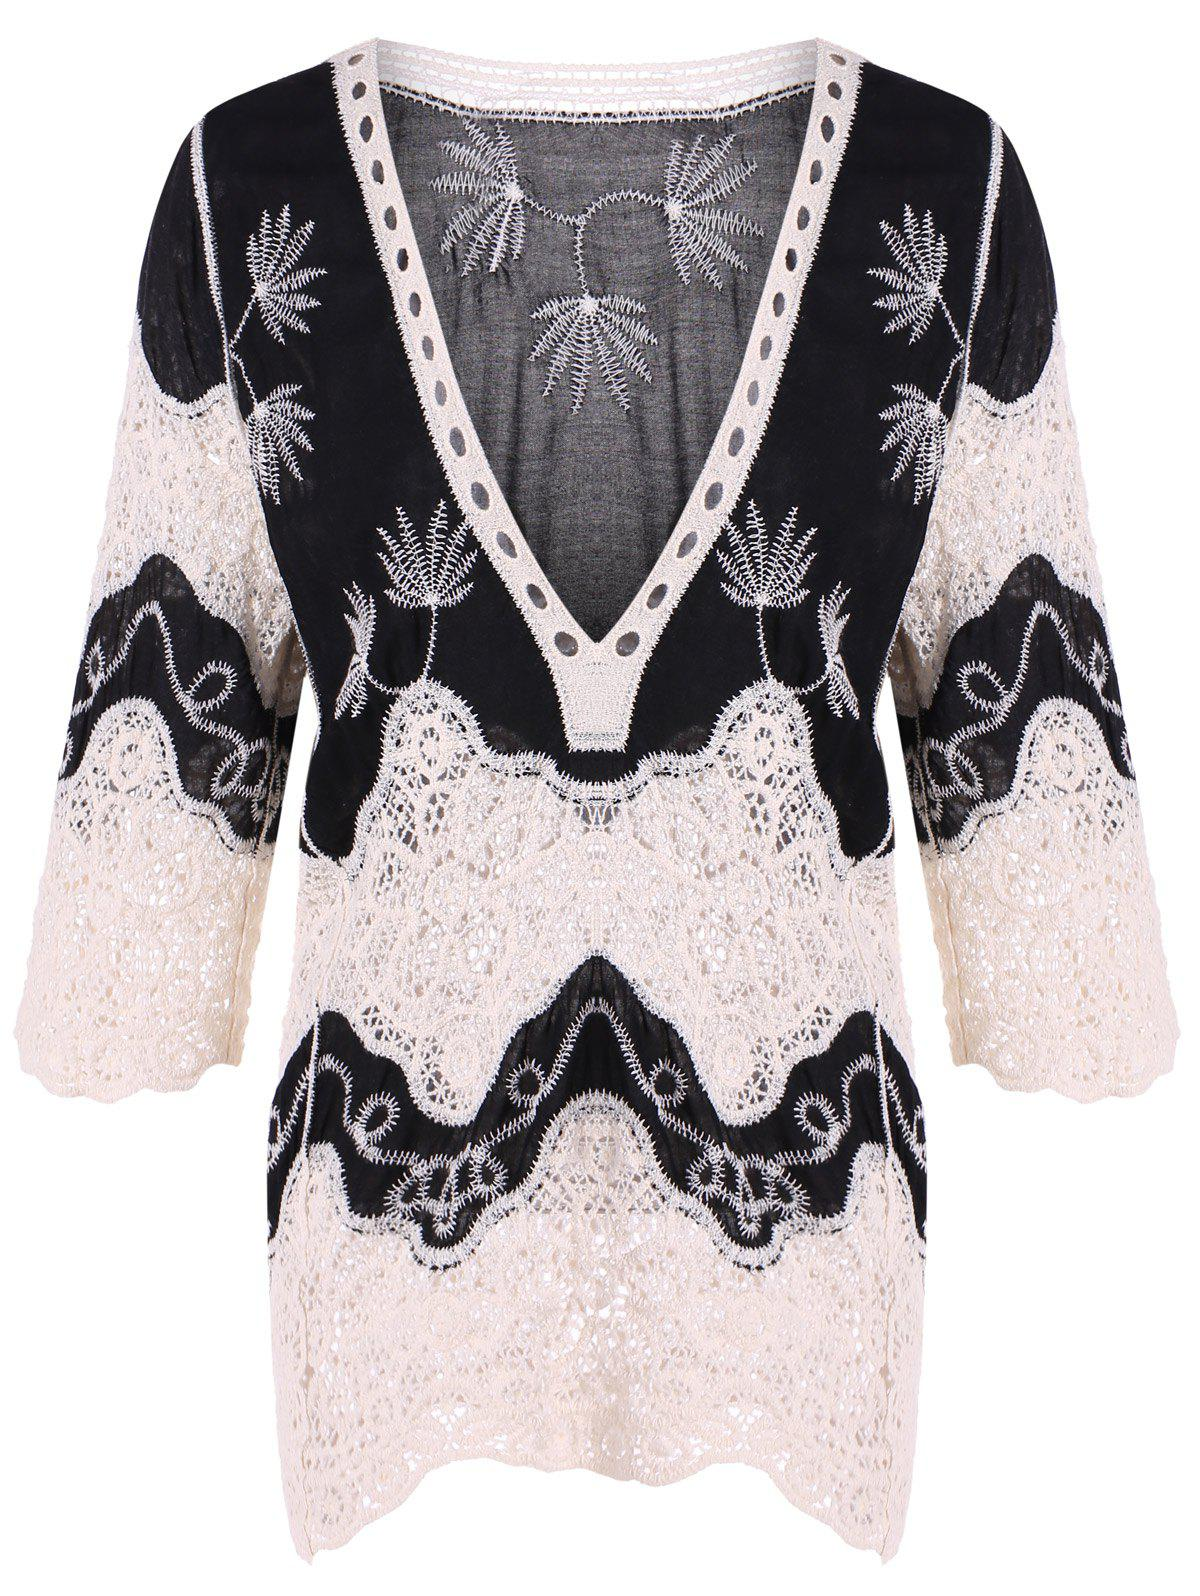 Lace Splicing Plunge Neck BlouseWOMEN<br><br>Size: 2XL; Color: BLACK; Material: Polyester; Shirt Length: Regular; Sleeve Length: Three Quarter; Collar: Plunging Neck; Style: Fashion; Season: Fall,Spring; Pattern Type: Others; Weight: 0.350kg; Package Contents: 1 x Blouse;